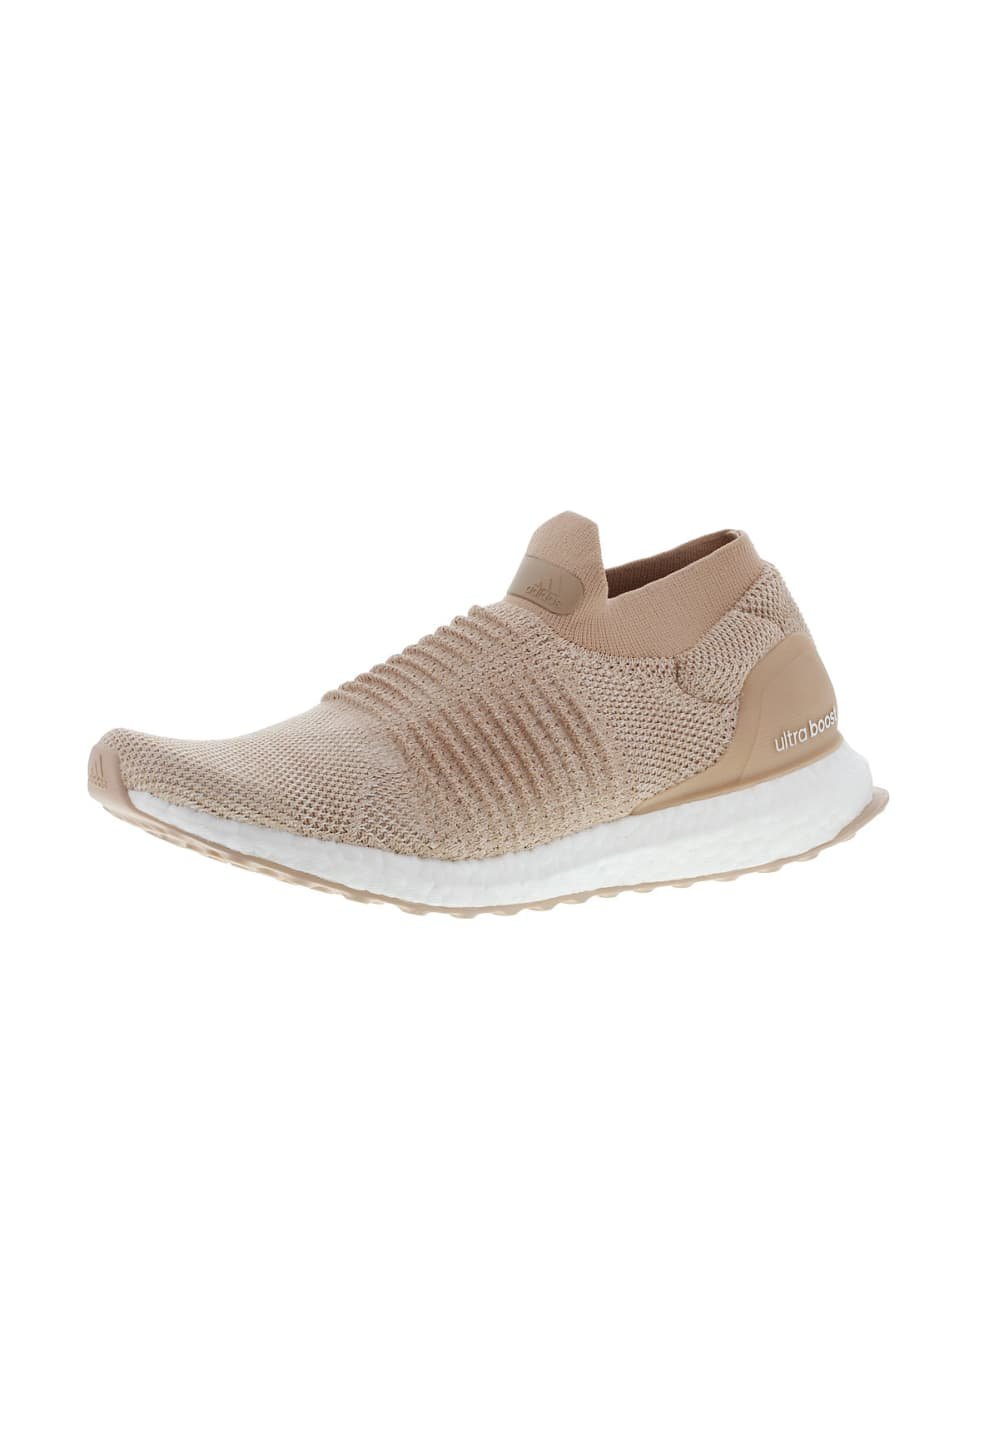 Nouveaux produits bf7ff b357b adidas Ultra Boost Laceless - Running shoes for Women - Beige